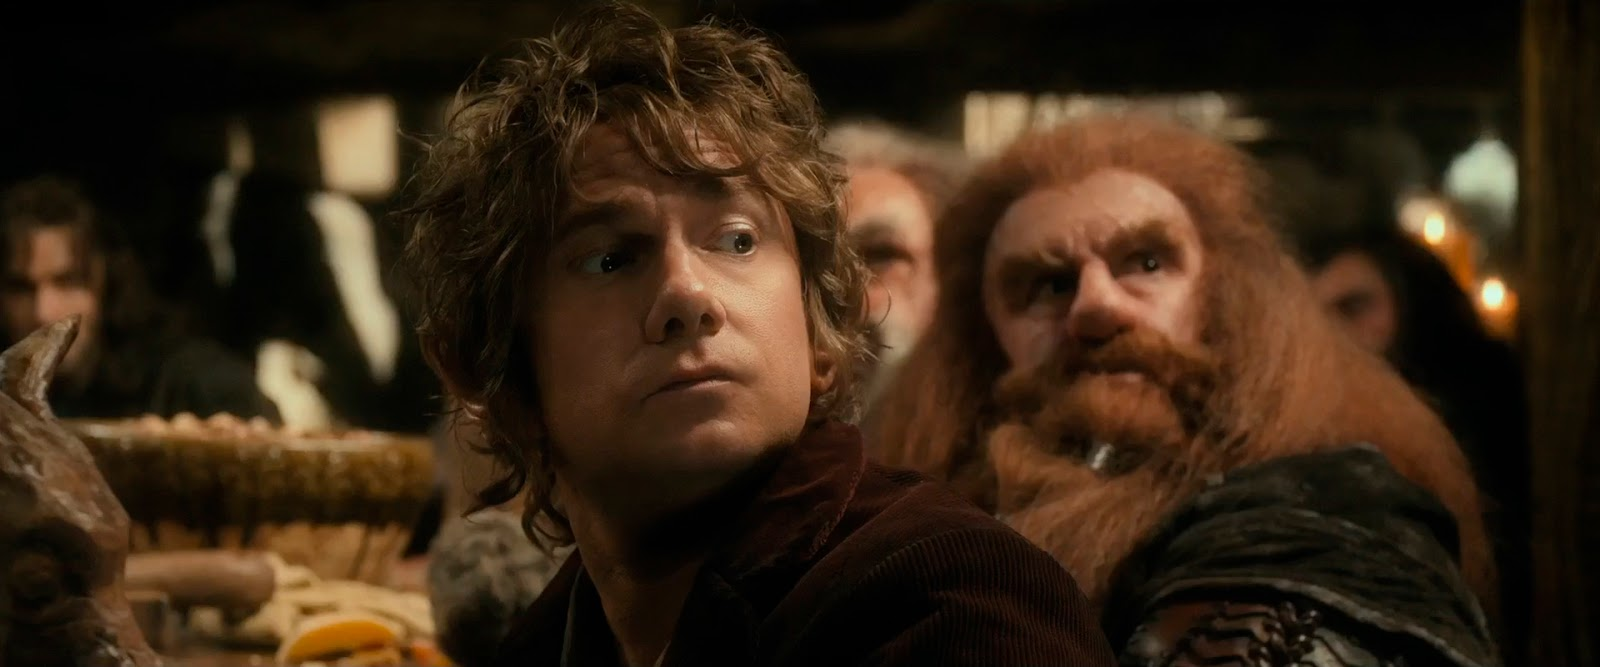 El Hobbit 2: (2013) HD 1080p Latino captura 1